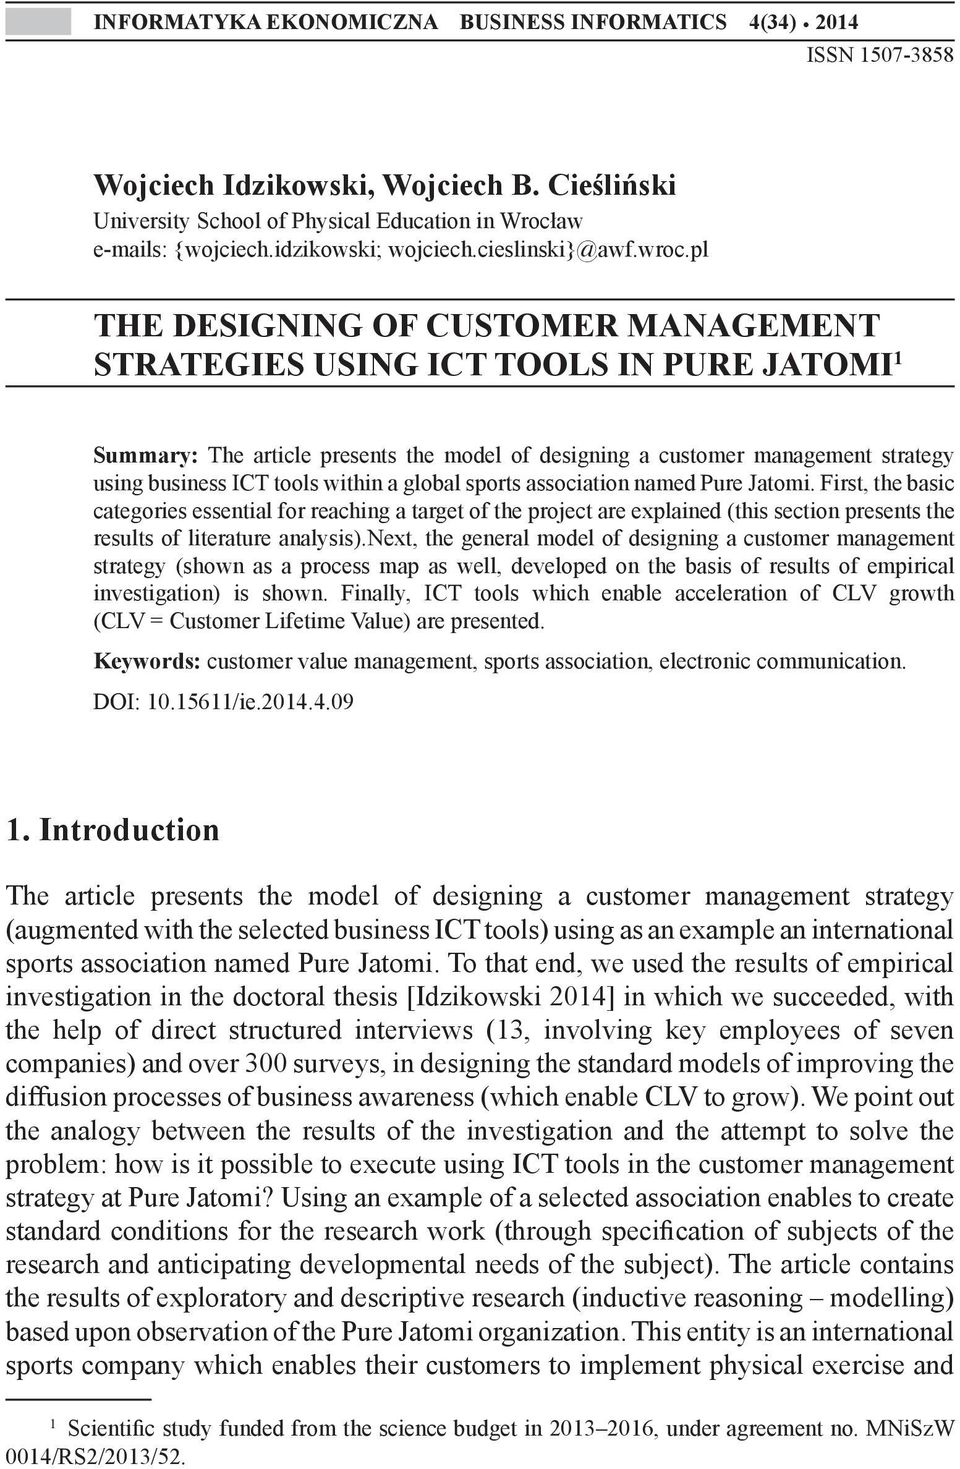 pl THE DESIGNING OF CUSTOMER MANAGEMENT STRATEGIES USING ICT TOOLS IN PURE JATOMI 1 Summary: The article presents the model of designing a customer management strategy using business ICT tools within